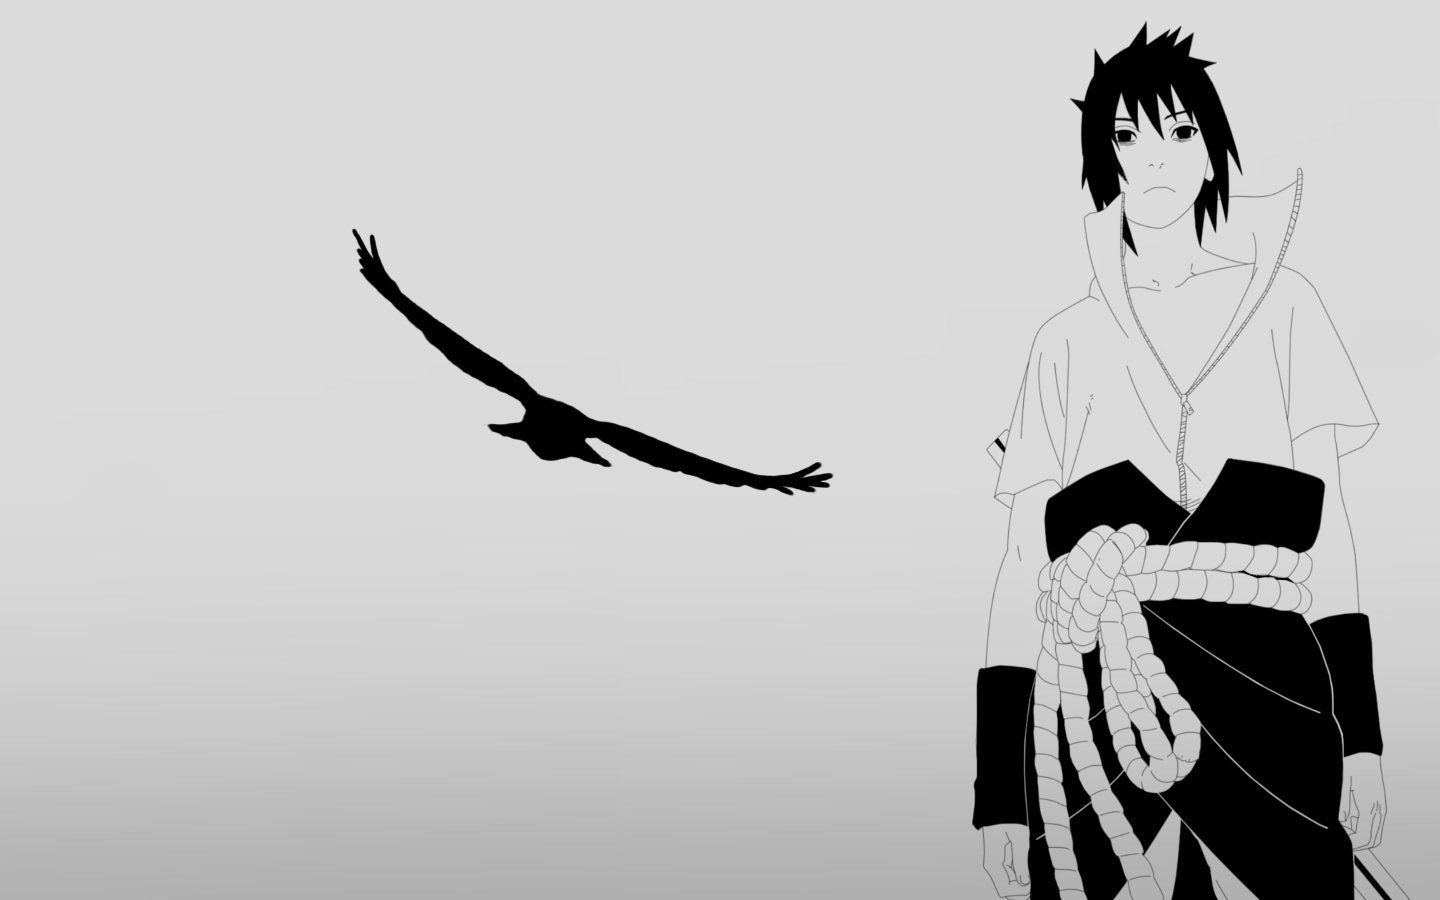 Sasuke Uchiha Shippuden Wallpapers - Wallpaper Cave